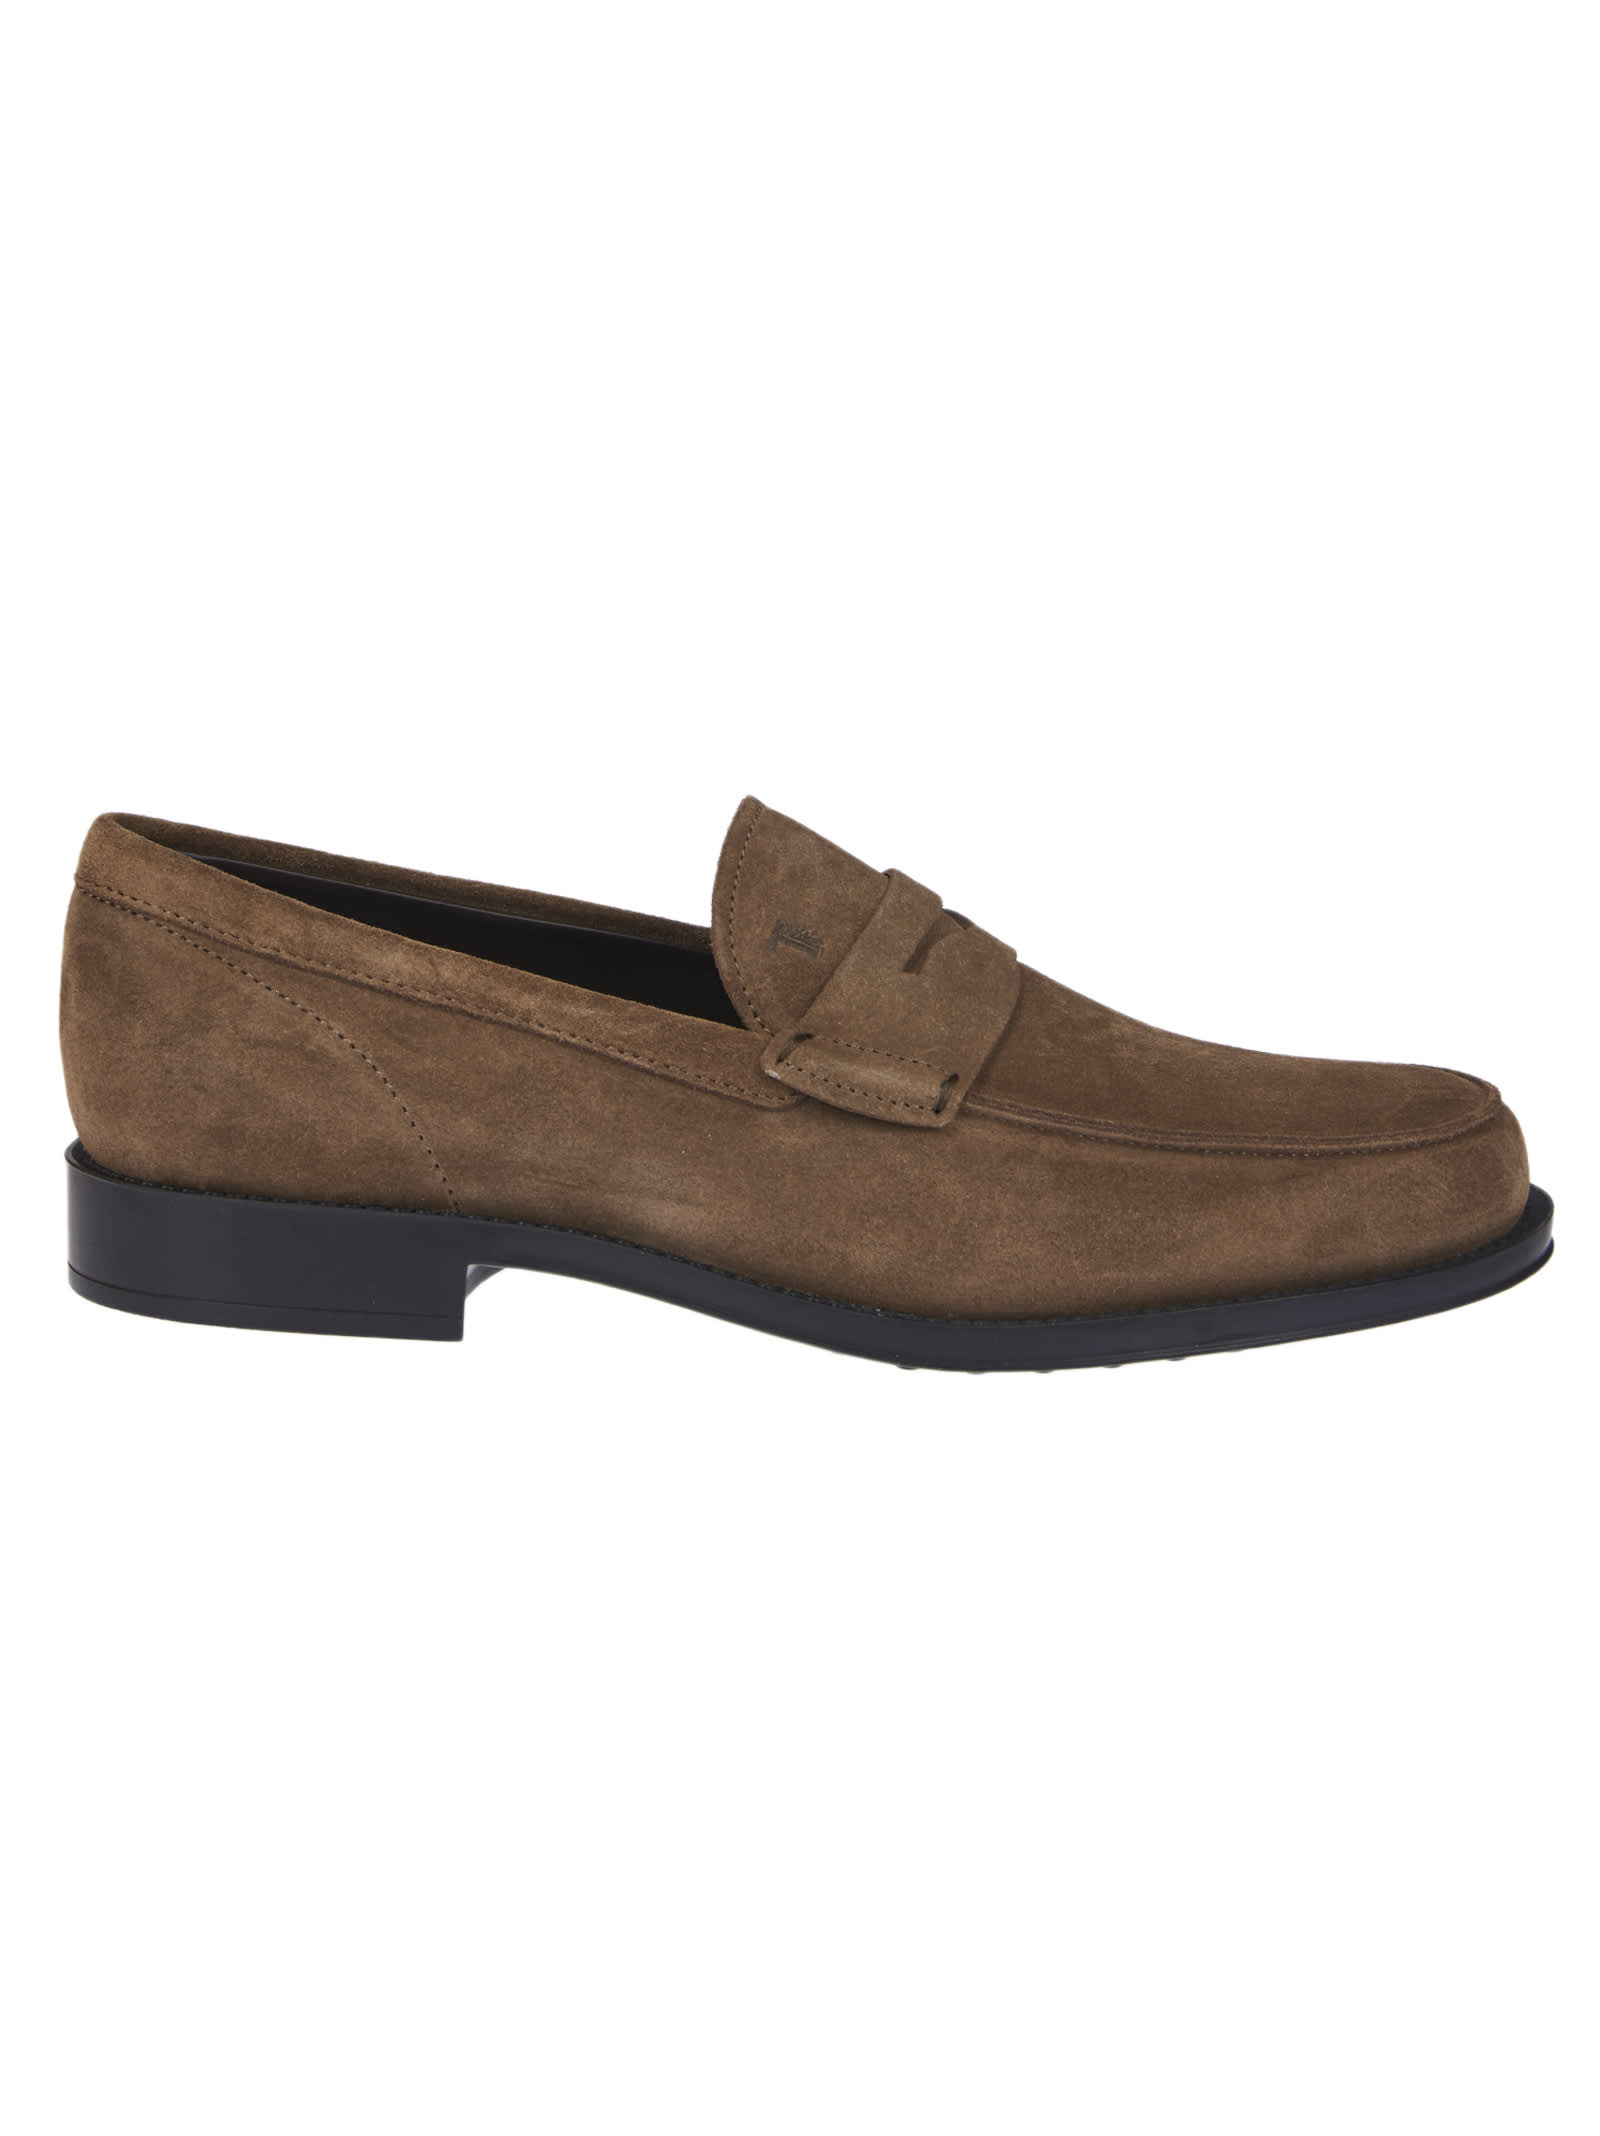 TOD'S WOMAN LOAFERS